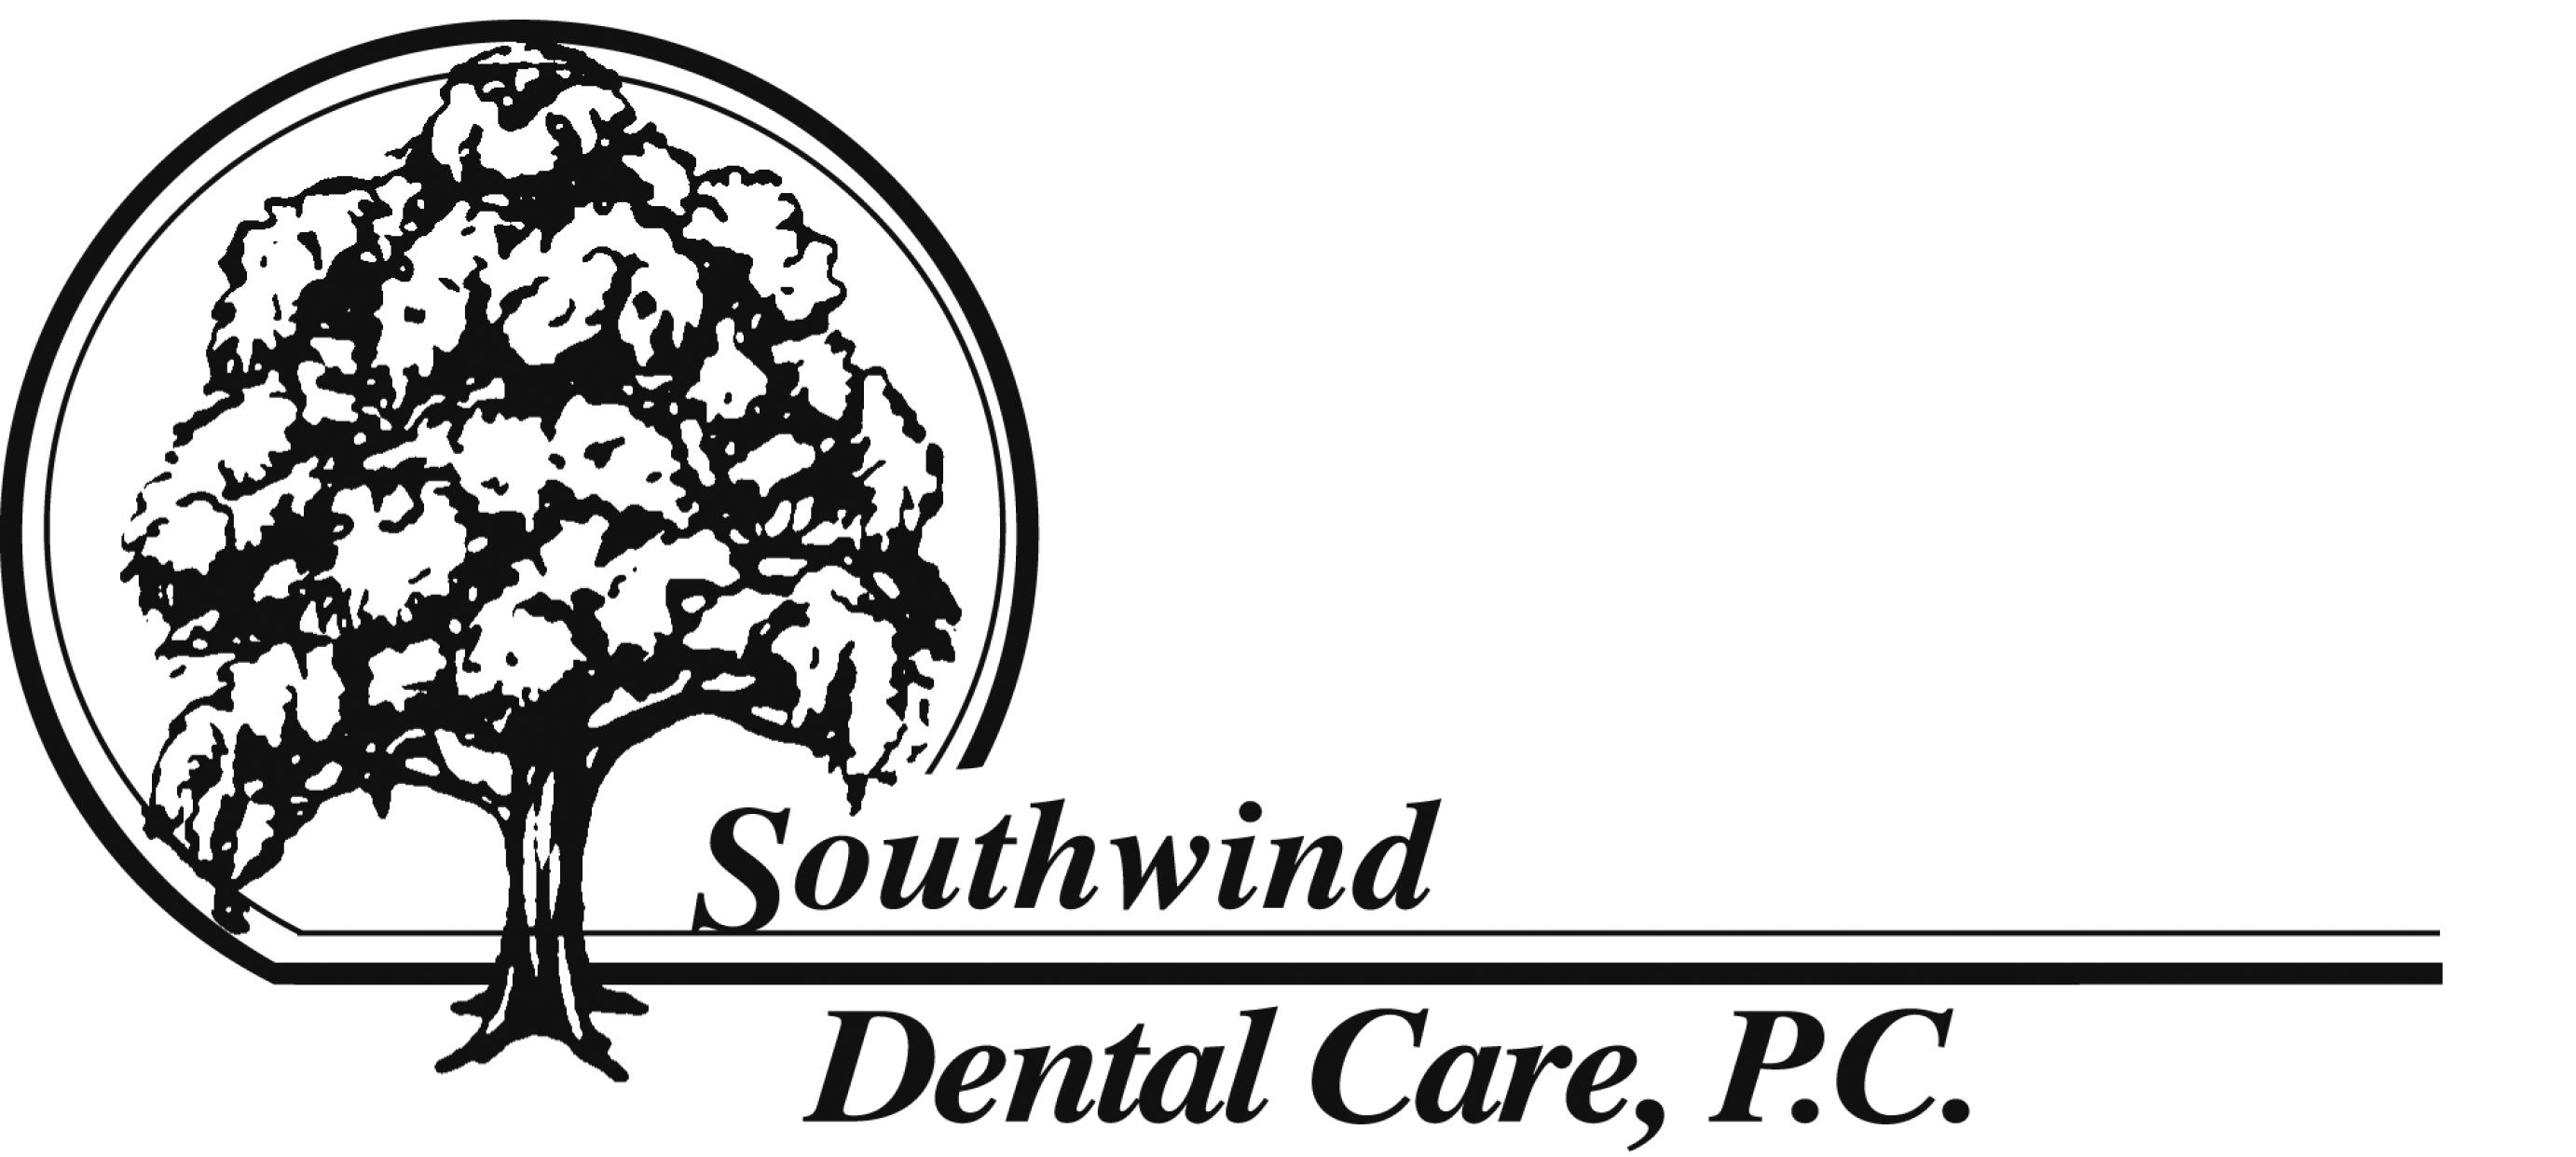 Southwind Dental Care PC